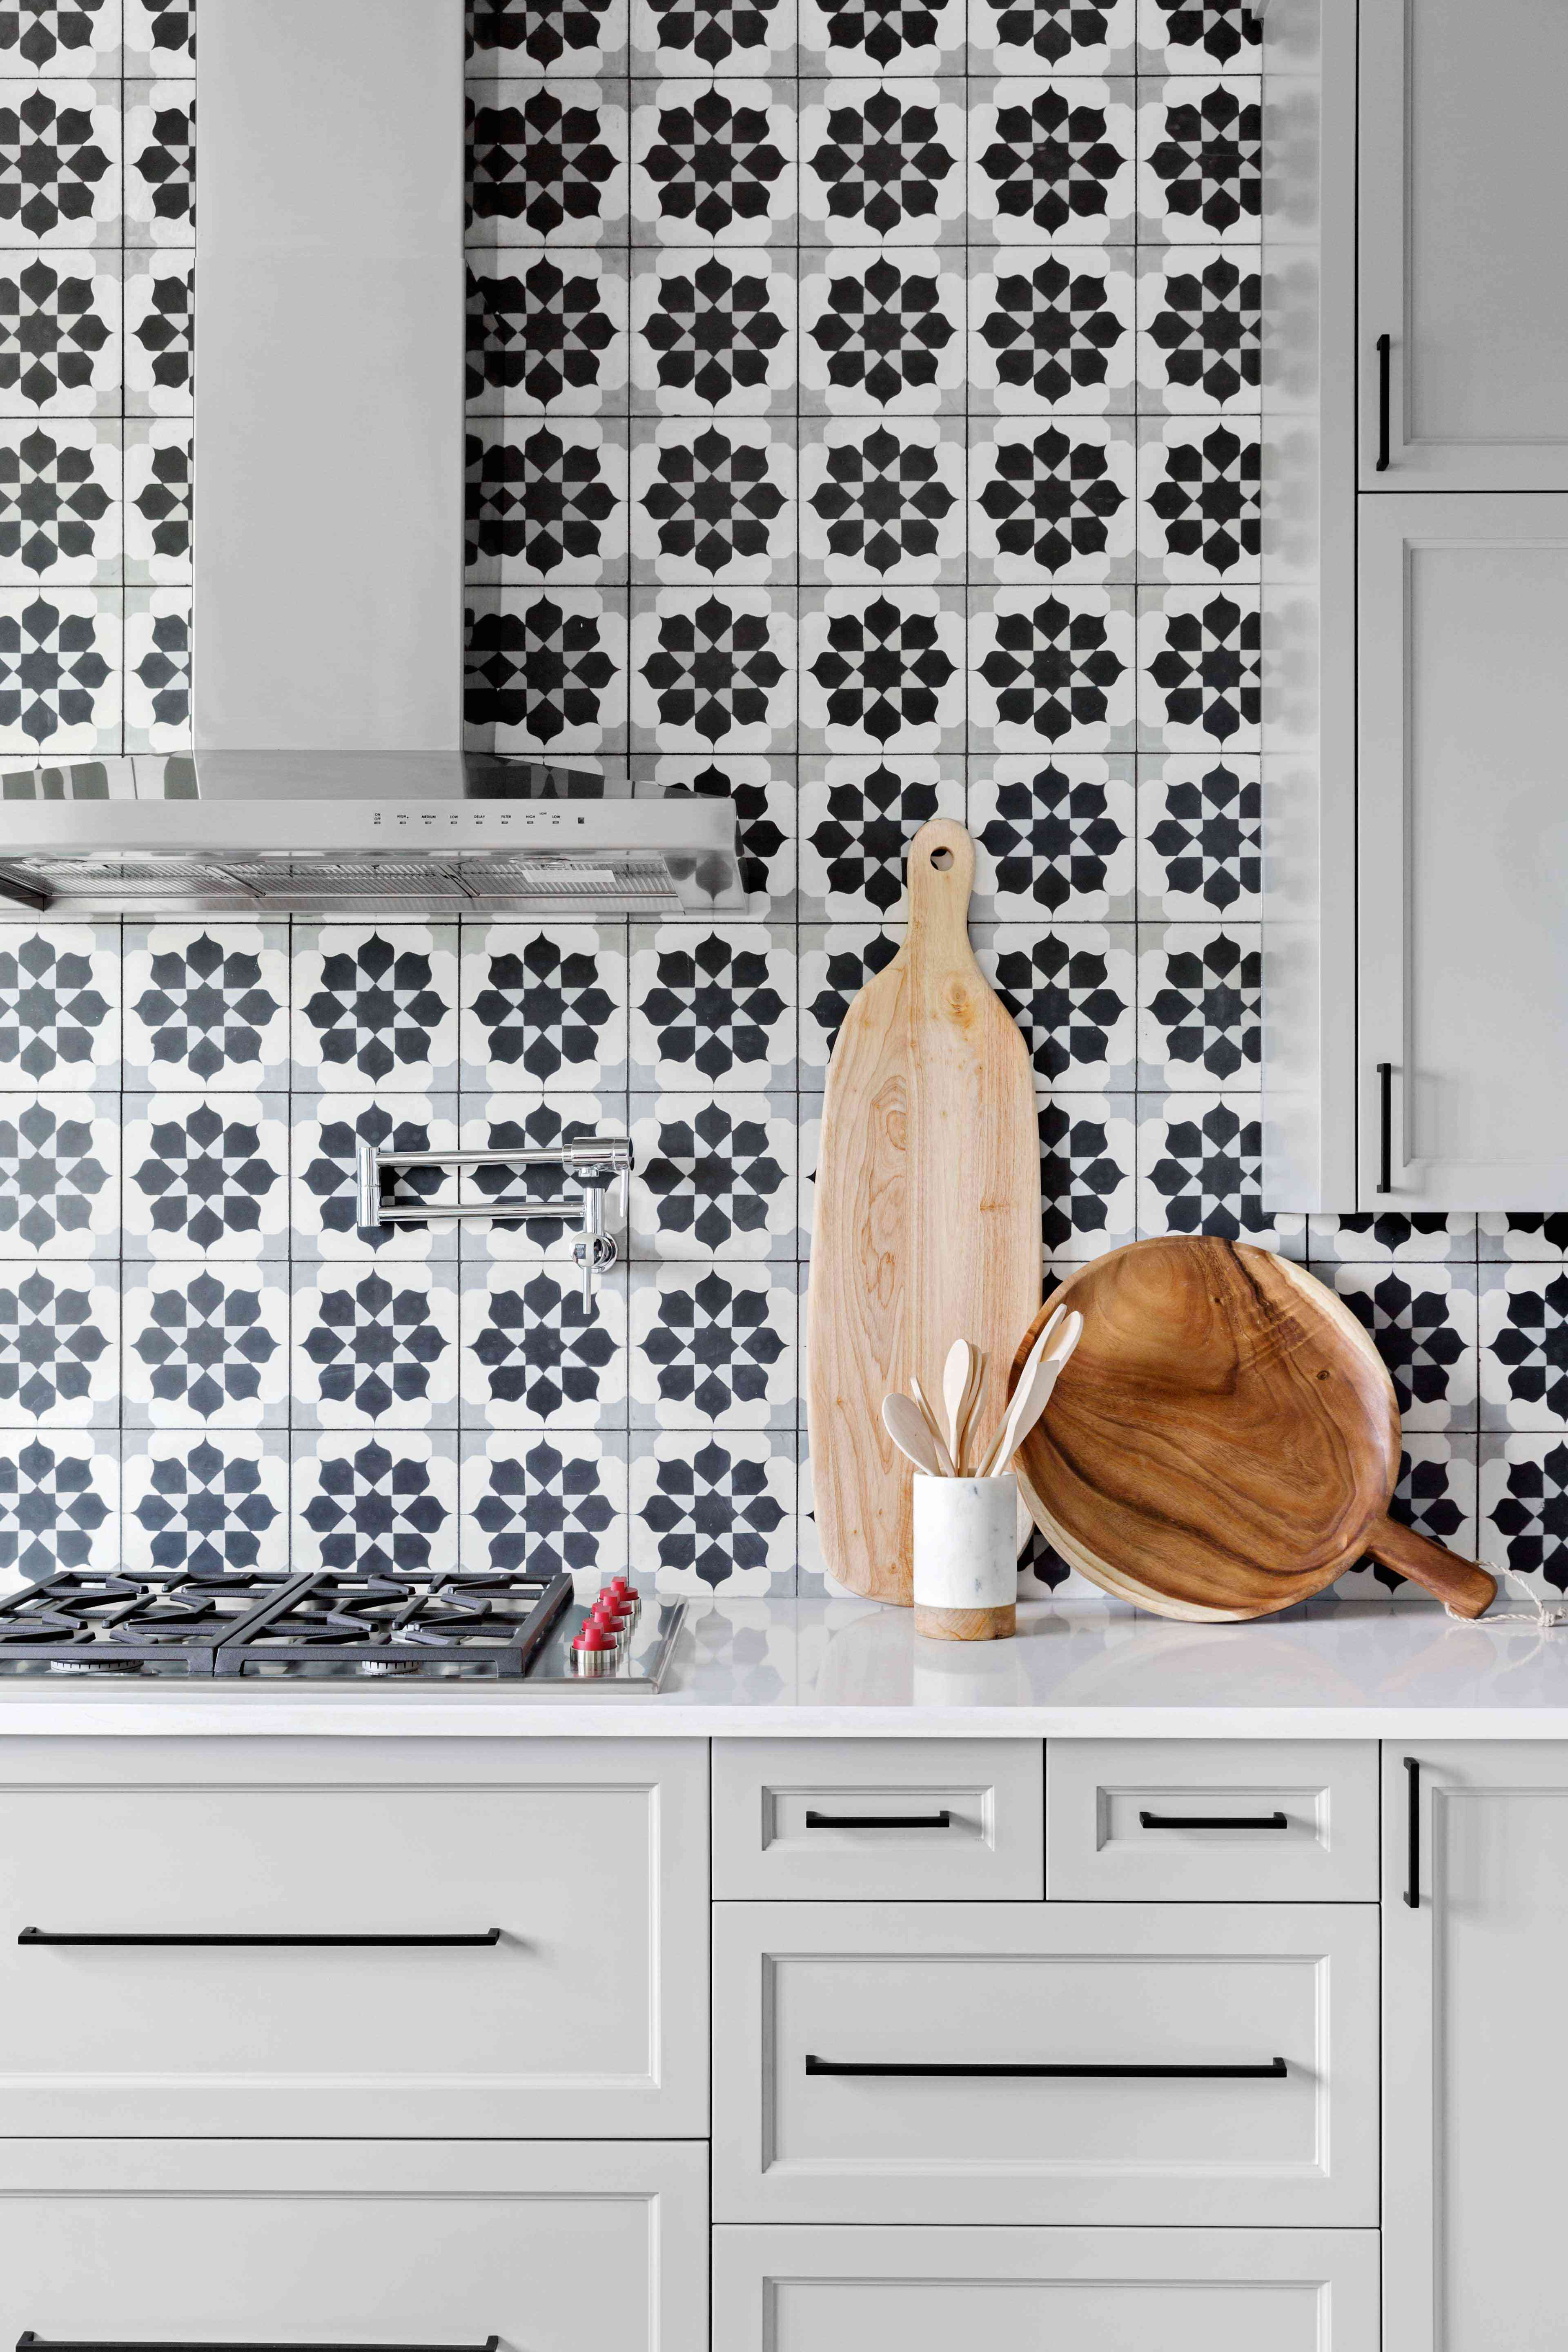 A kitchen with a bold tiled backsplash and gray kitchen cabinets